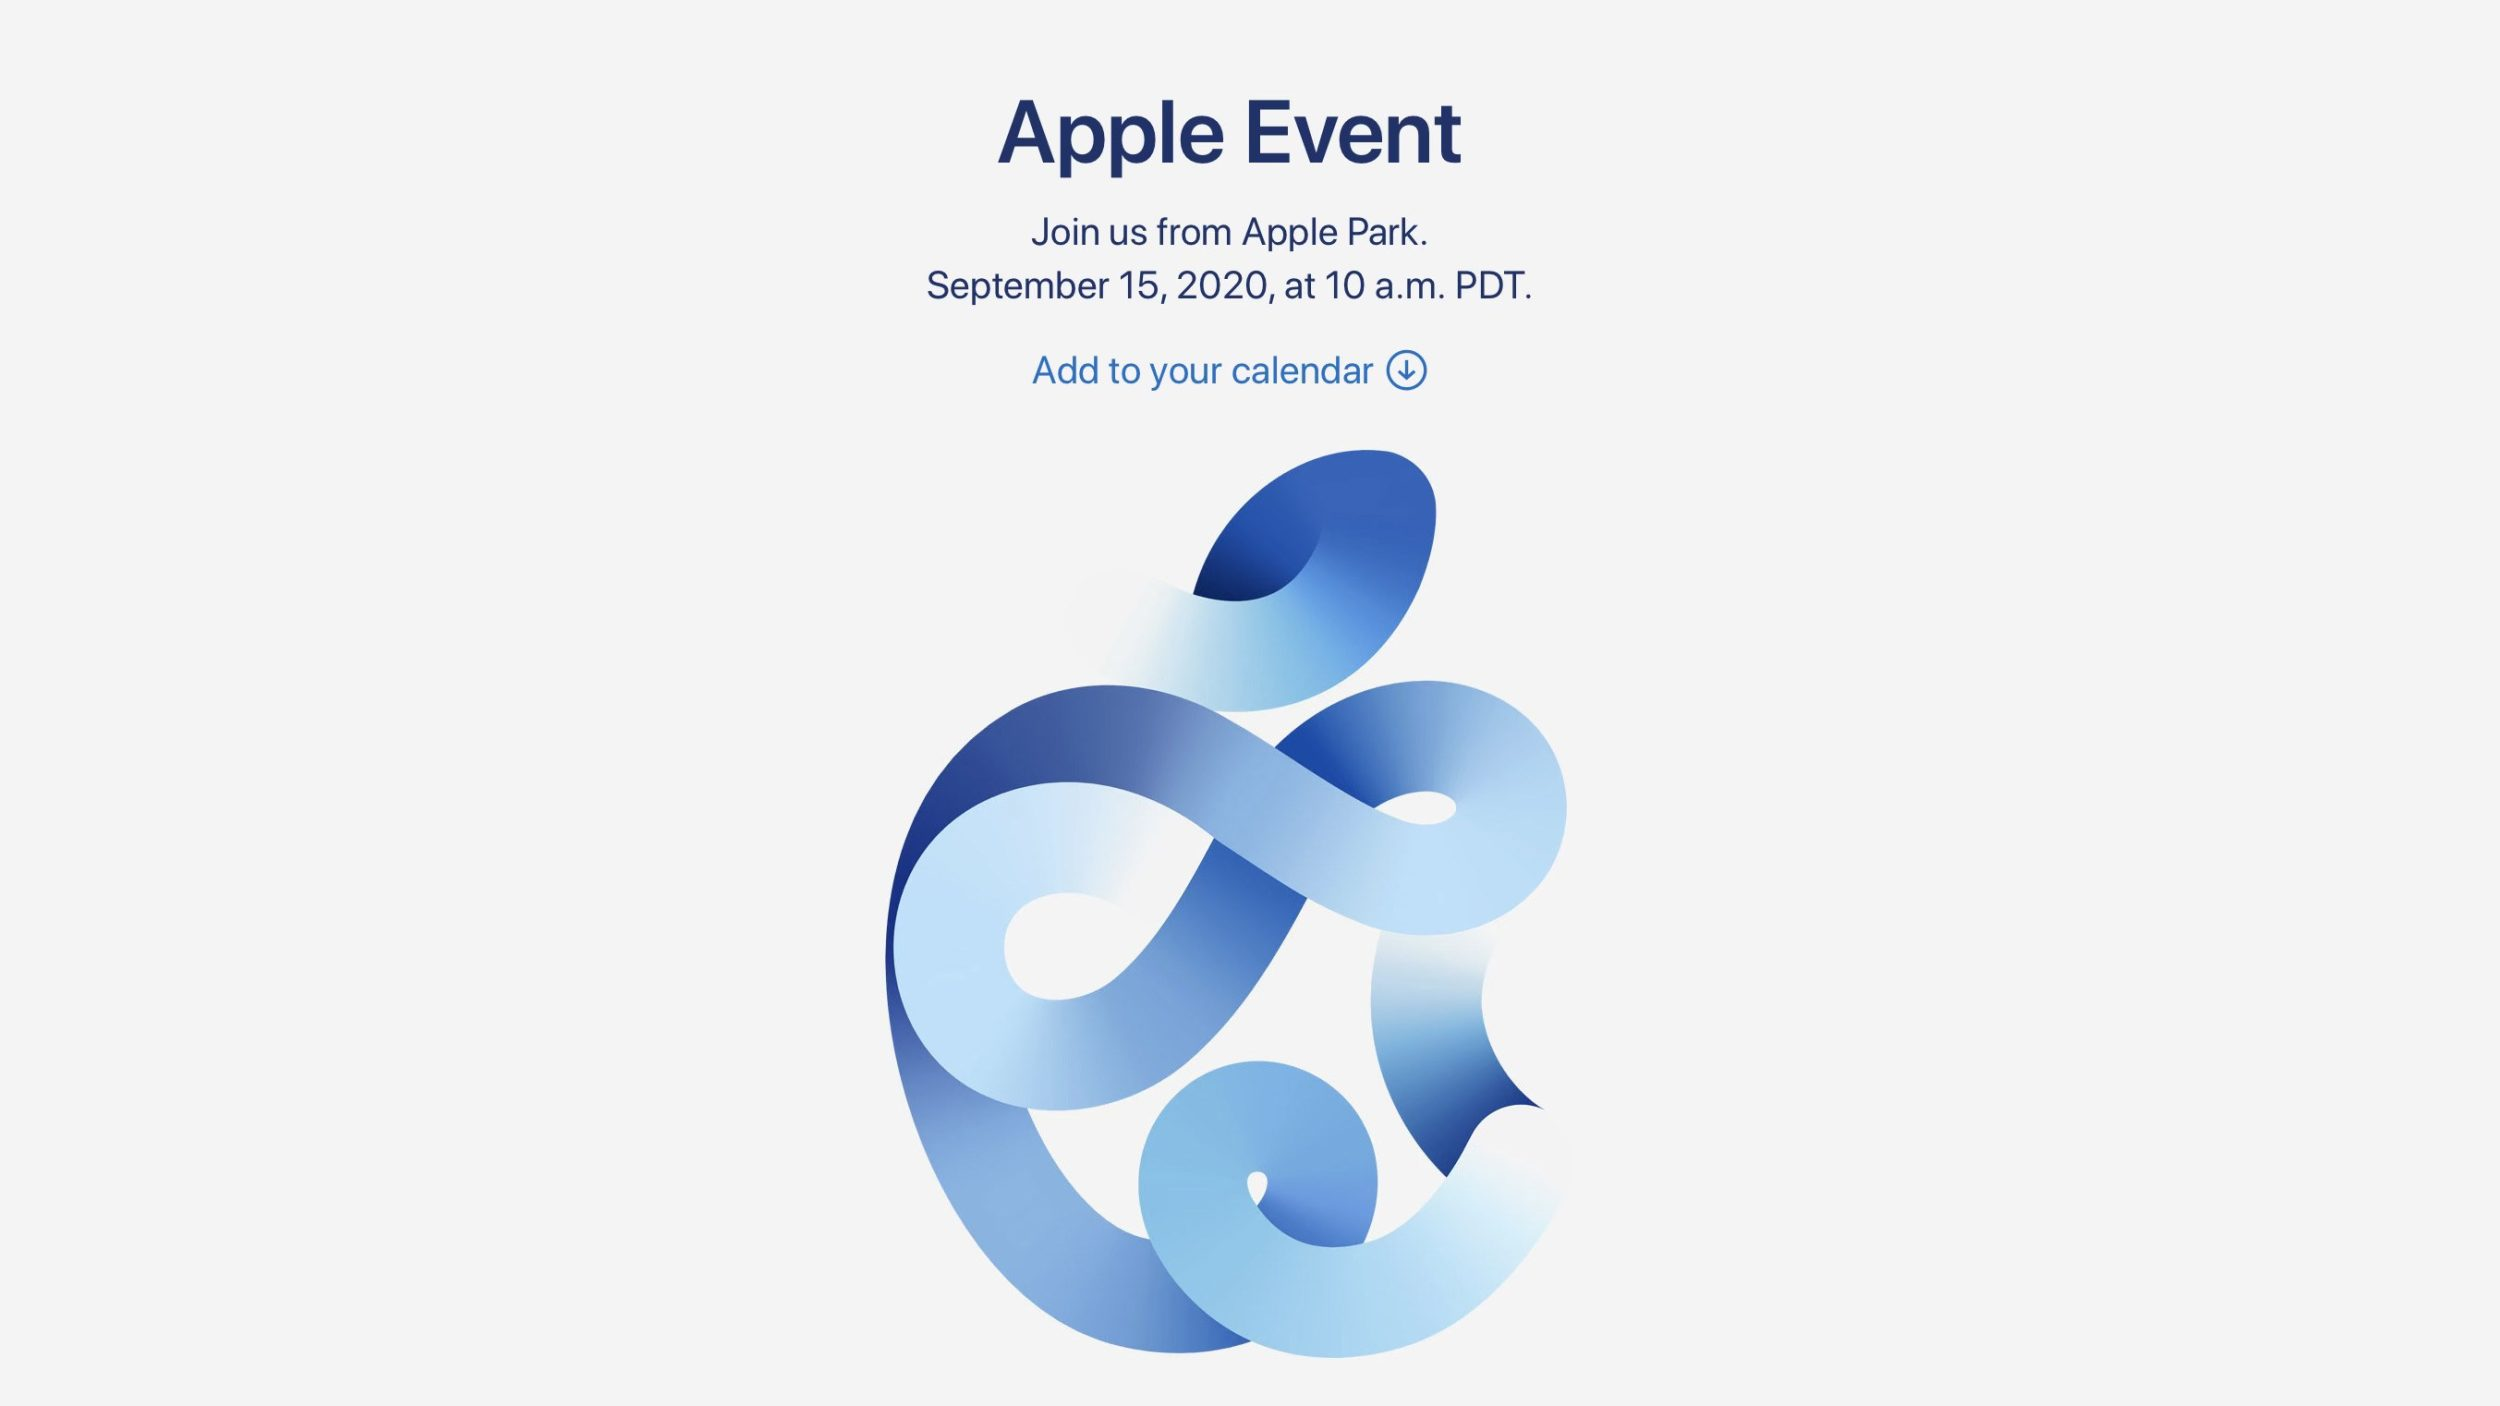 Apple 's September 15 Event: Details!